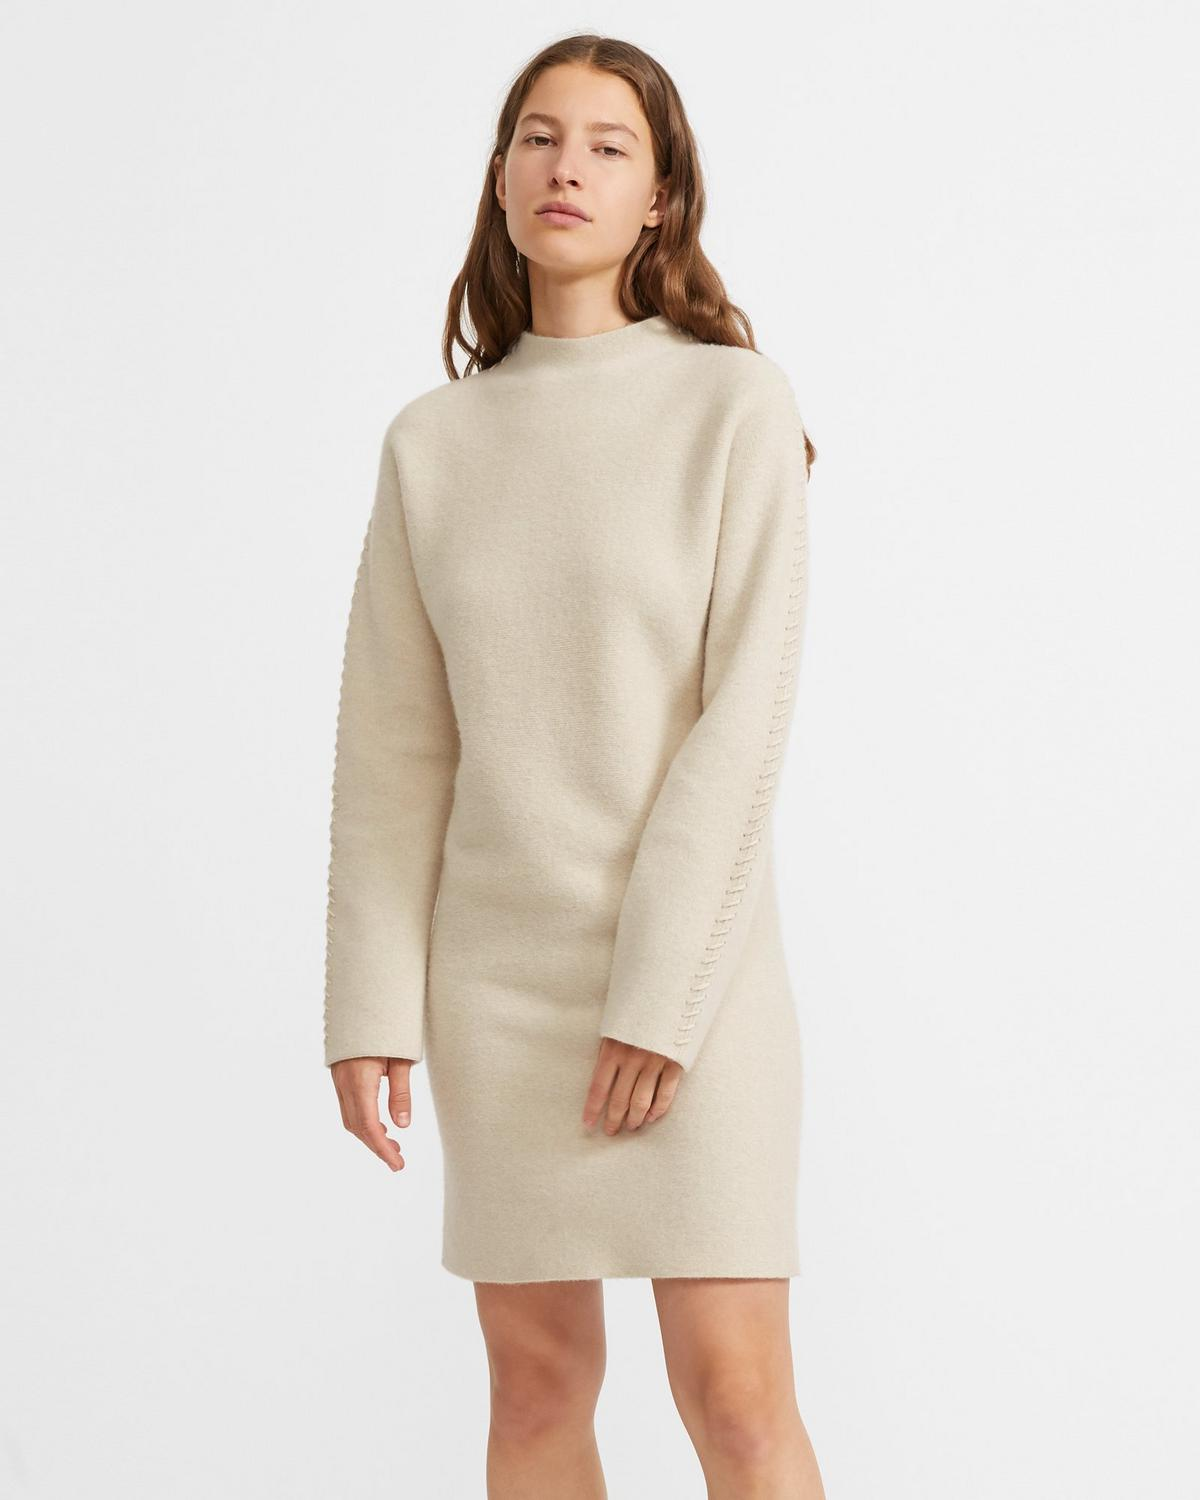 Kimono Turtleneck Dress in Felted Wool-Cashmere